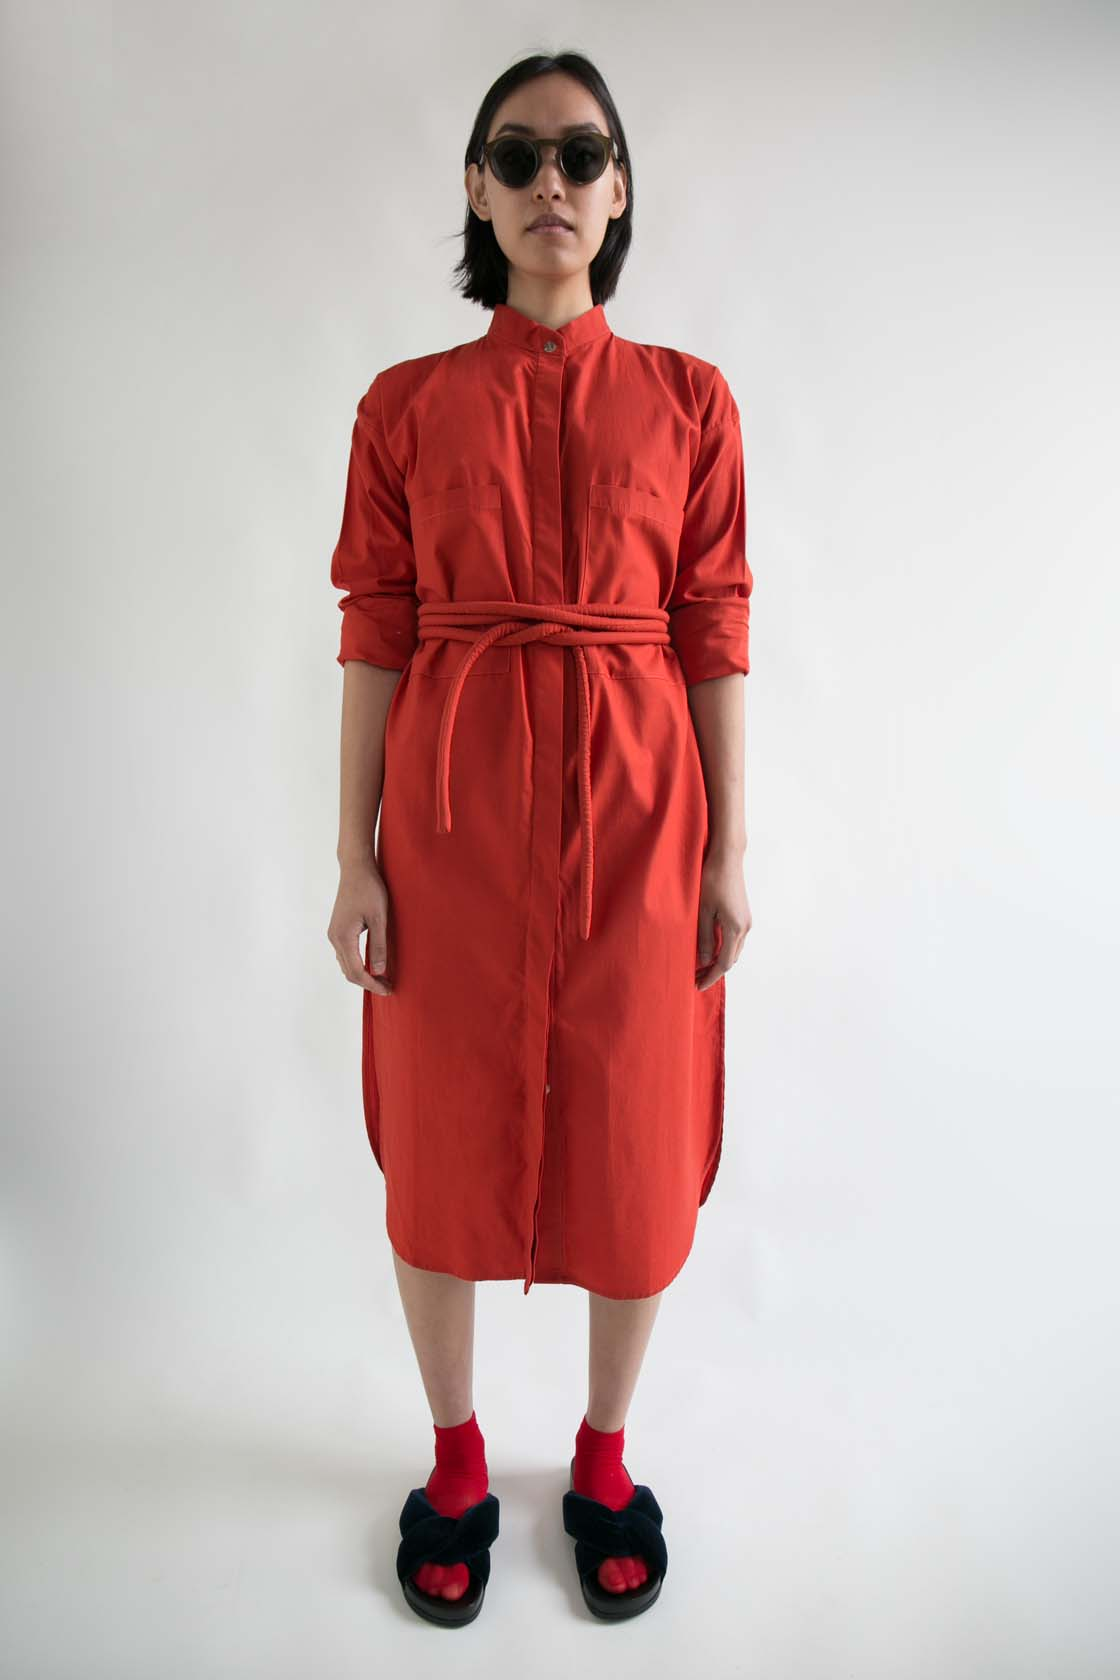 Dicet Button Up Dress  XS S M L  $350